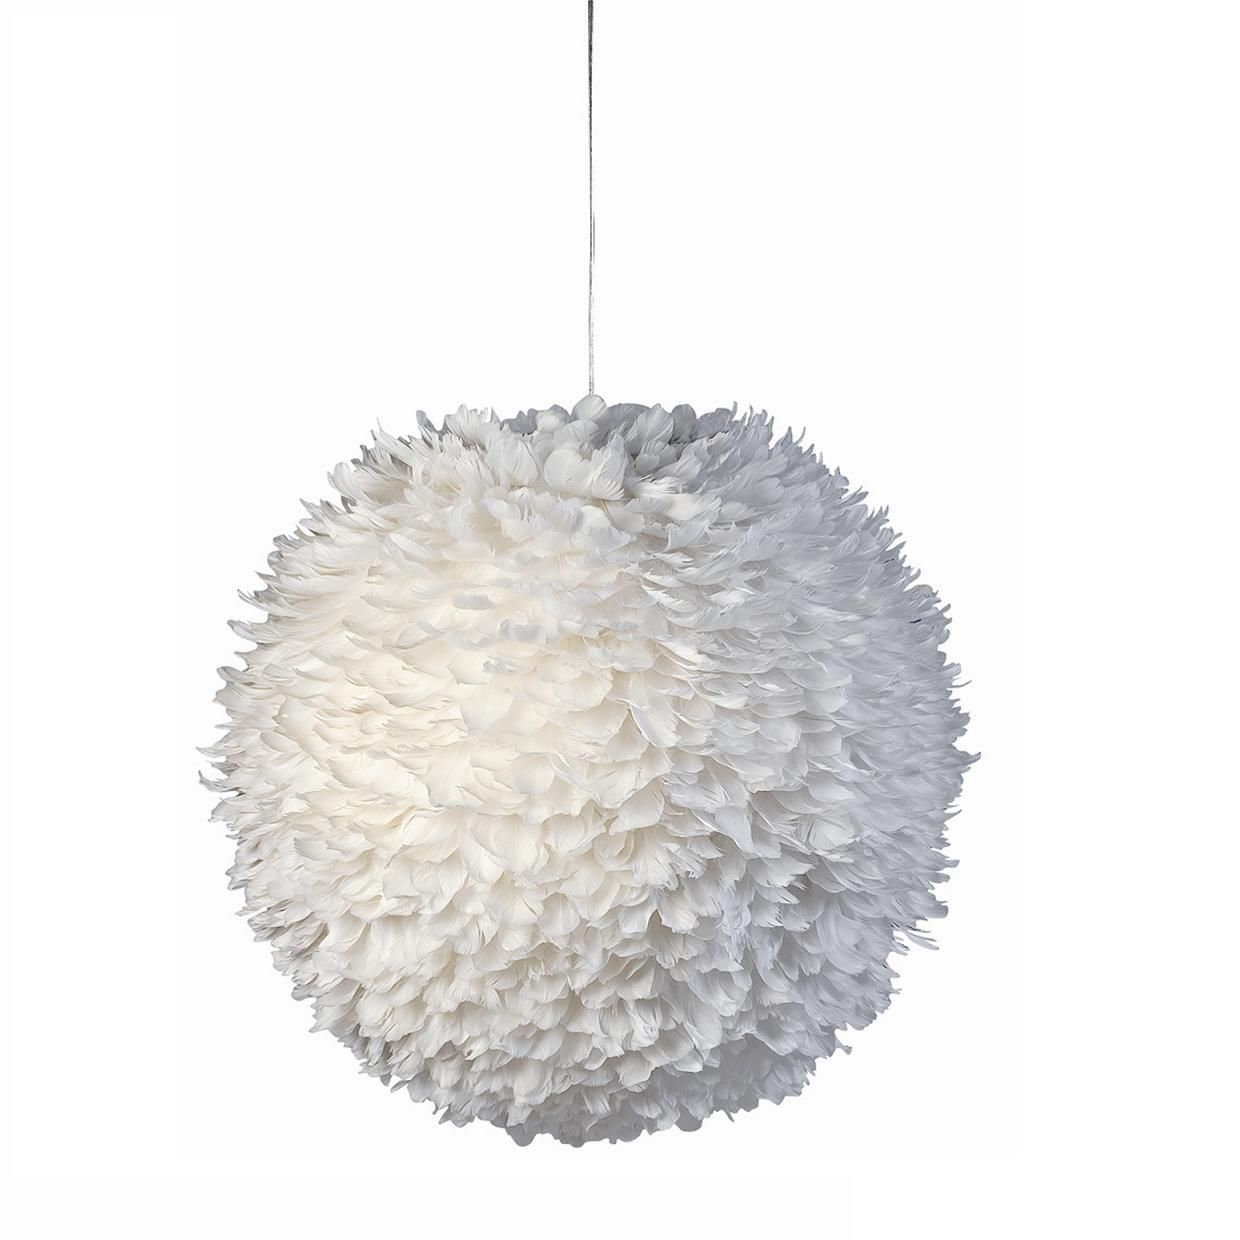 Suspension Papier Boule Suspension Boule Plumes Mat Lustre Design Suspension Design